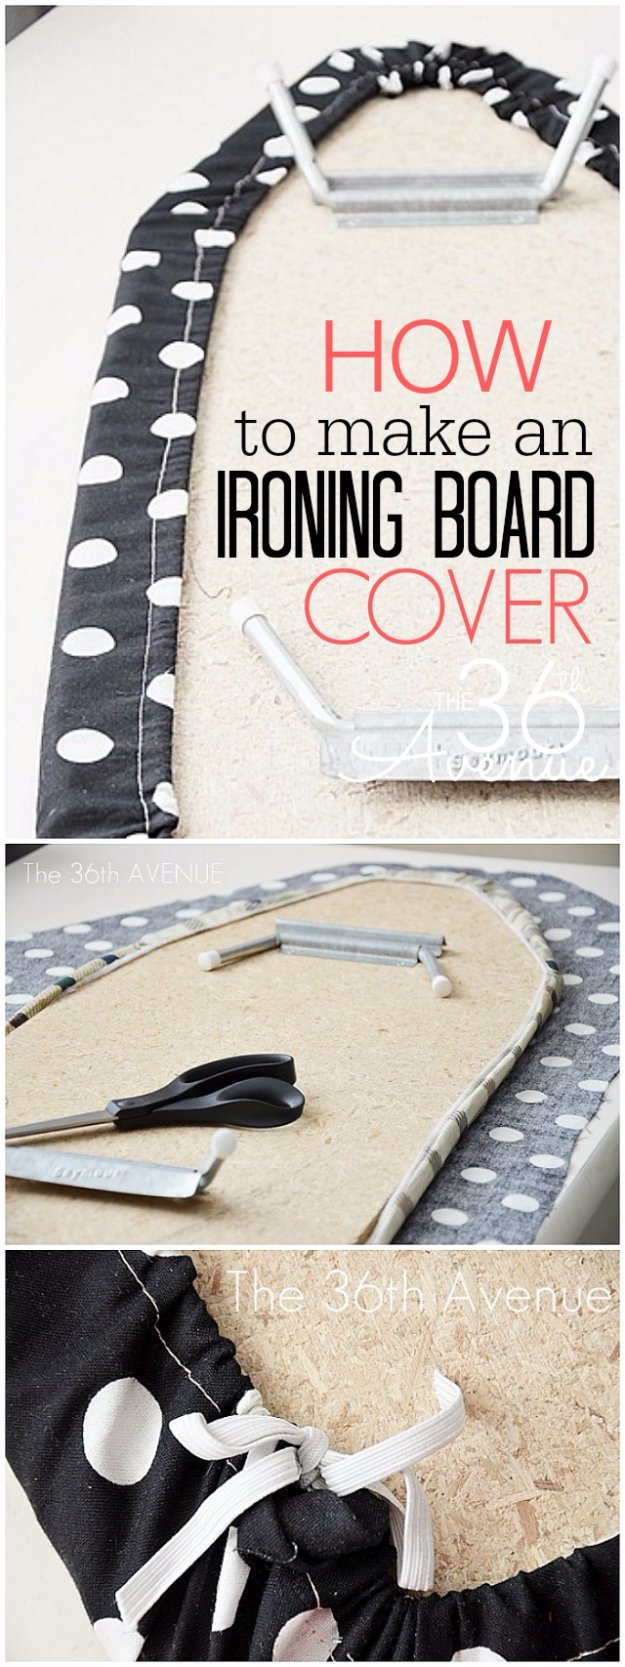 Easy Sewing Projects to Sell - Ironing Board Cover - DIY Sewing Ideas for Your Craft Business. Make Money with these Simple Gift Ideas, Free Patterns #sewing #crafts